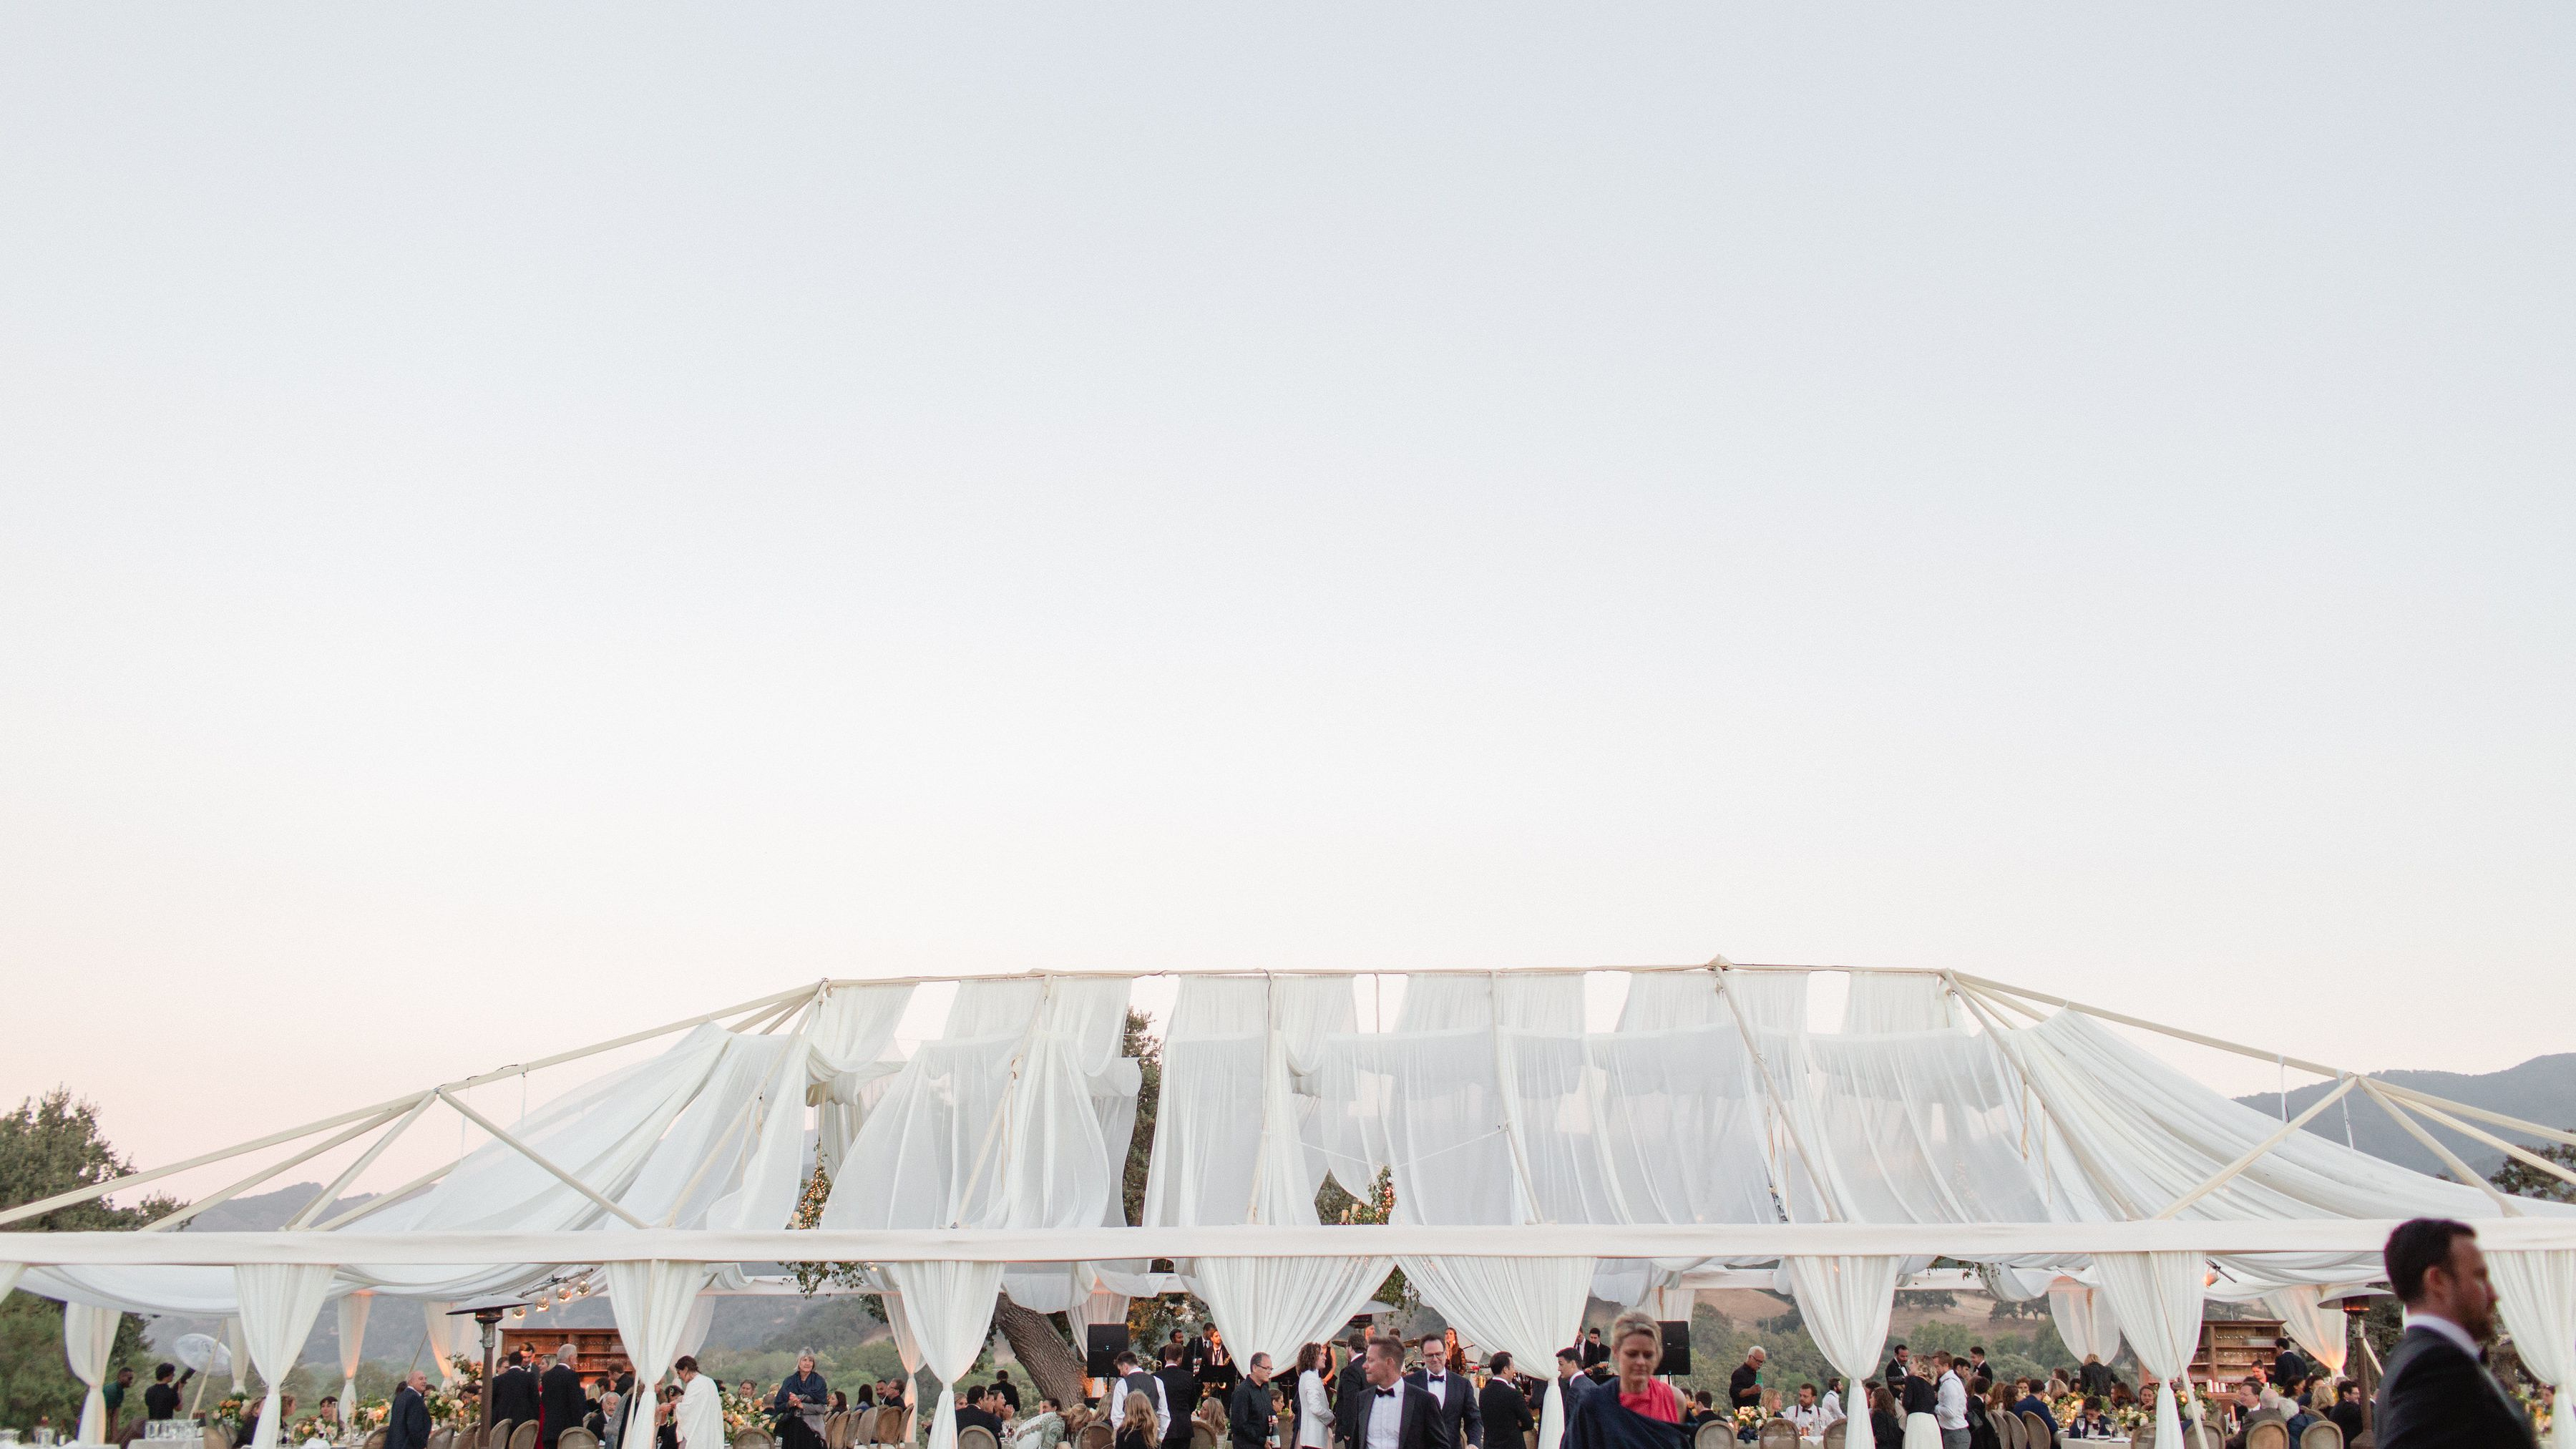 Wedding Reminders for Guests: 9 Details to Make Sure